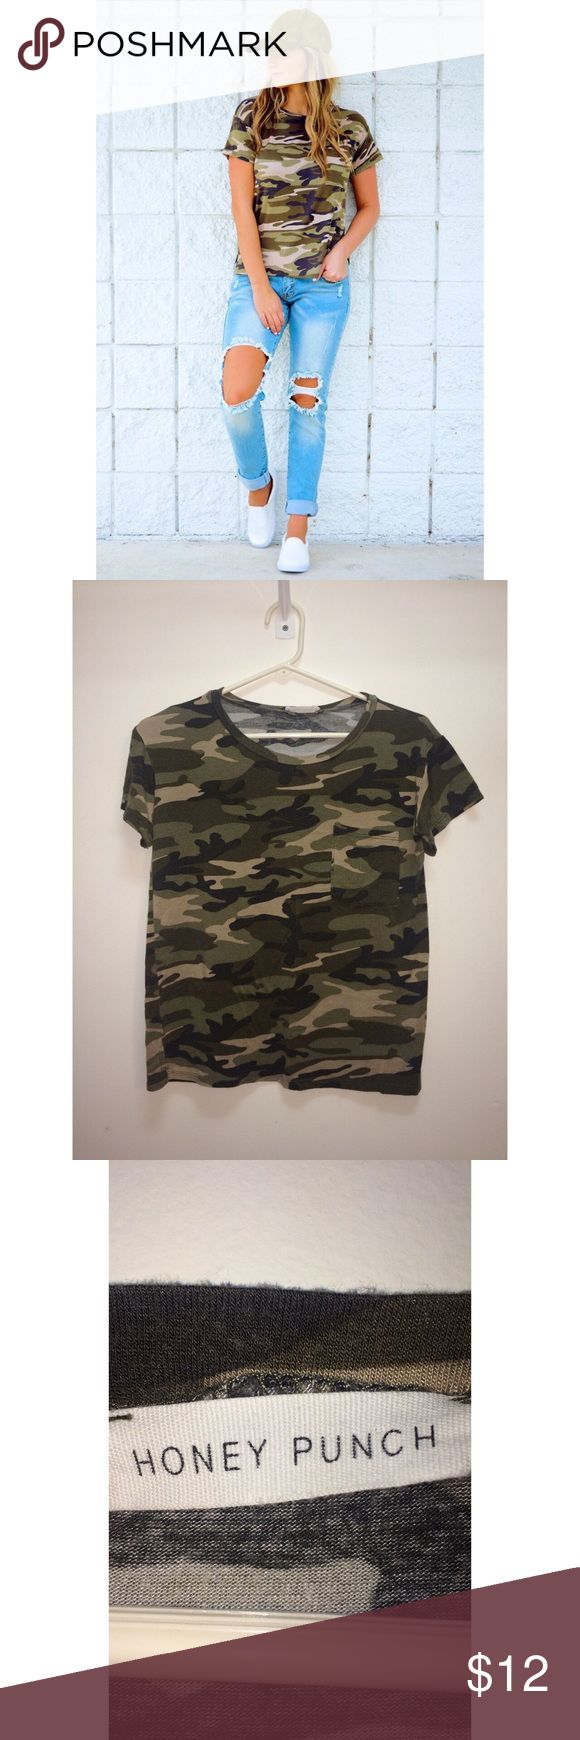 Small Camo Tee from Shop Hopes Super cute and casual camo tee. Bought from Shop Hopes and worn twice! Size small, has a cute front pocket. ✨all offers considered✨ ✨smoke free home✨ shop hopes Tops Tees - Short Sleeve